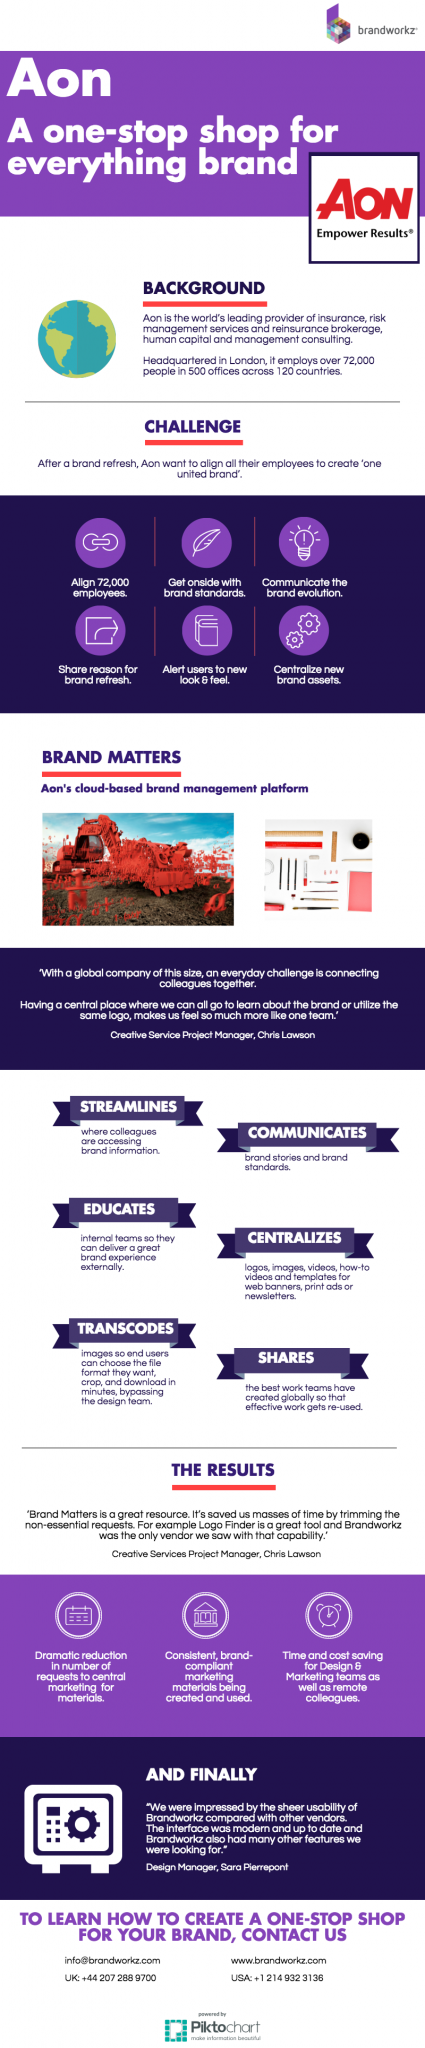 Aon Infographic